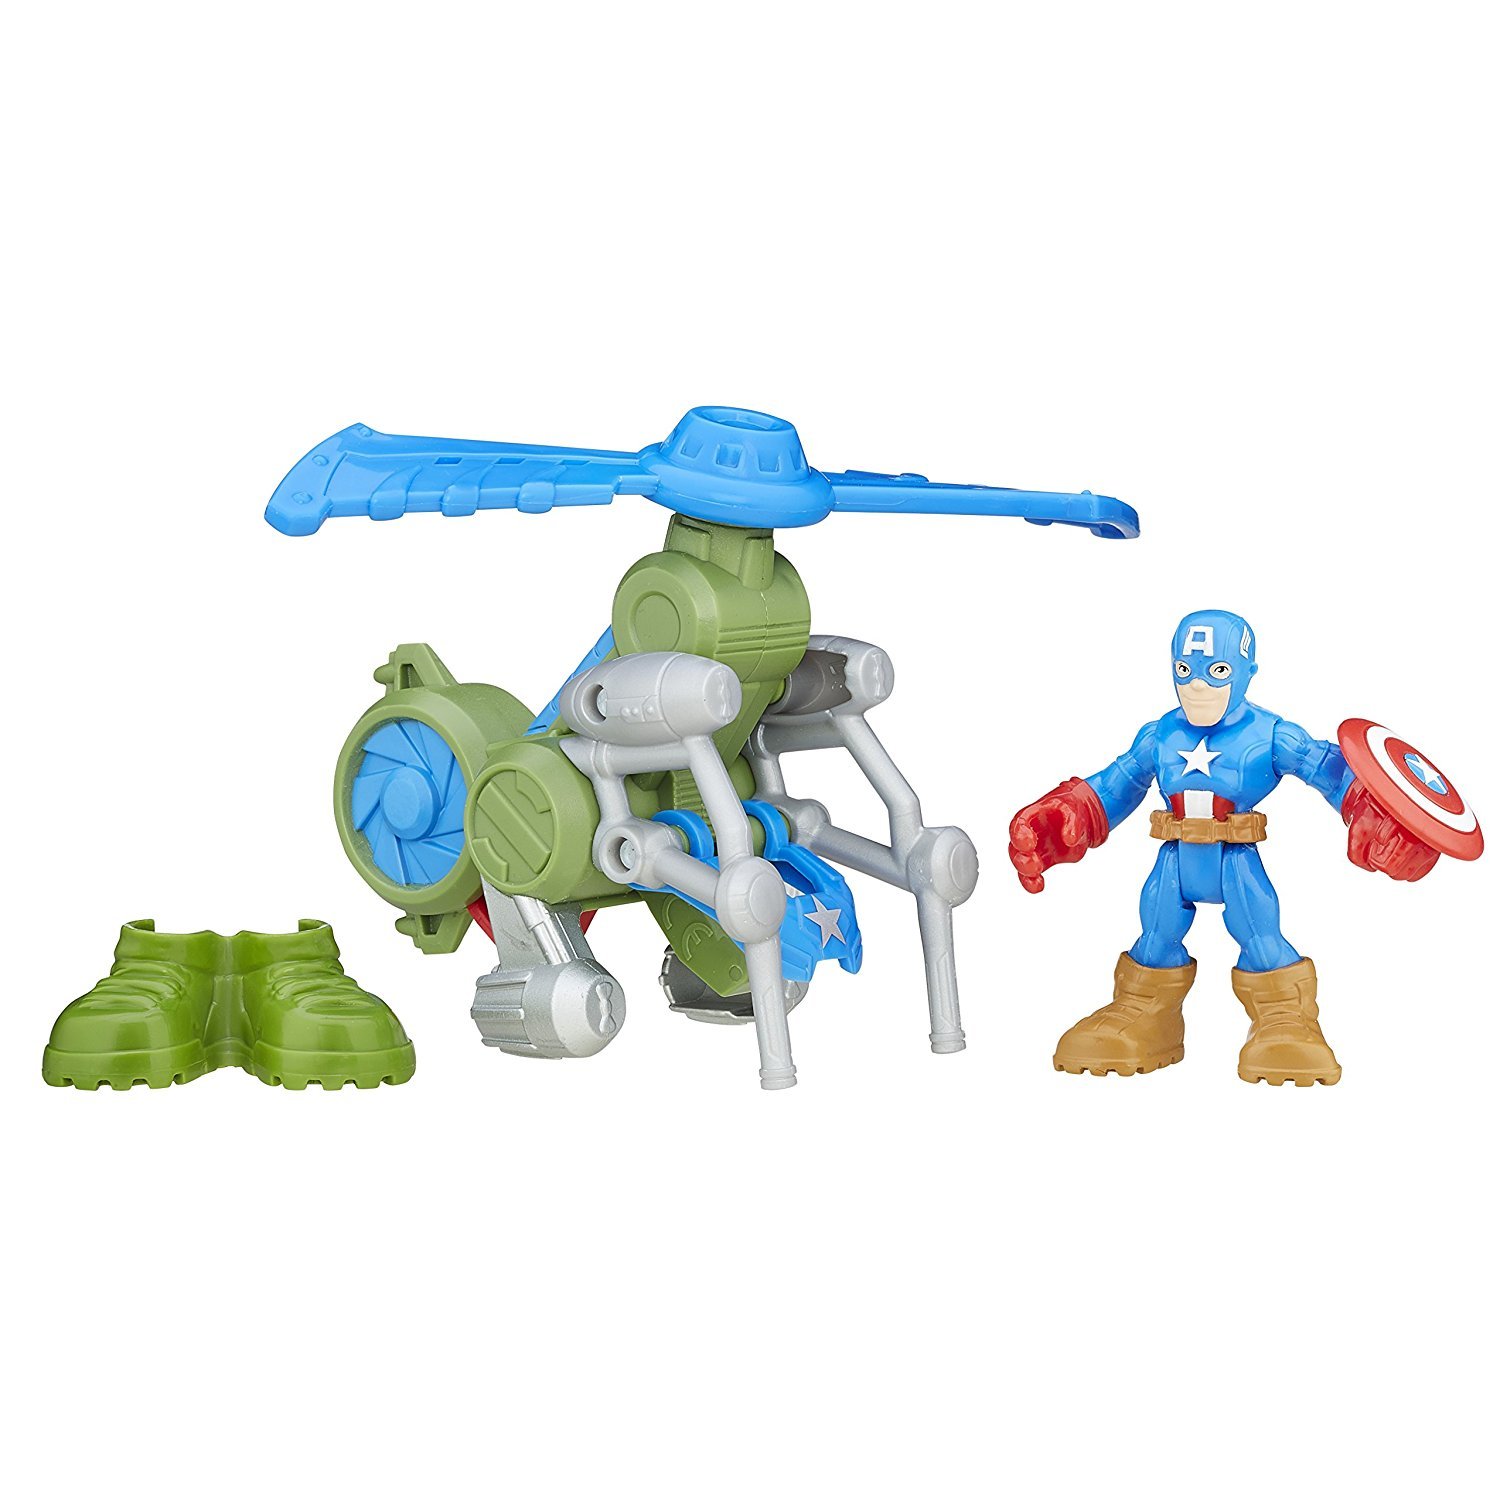 Heroes Super Hero Adventures Jungle Copter Captain America, Spinning rotor By Playskool by